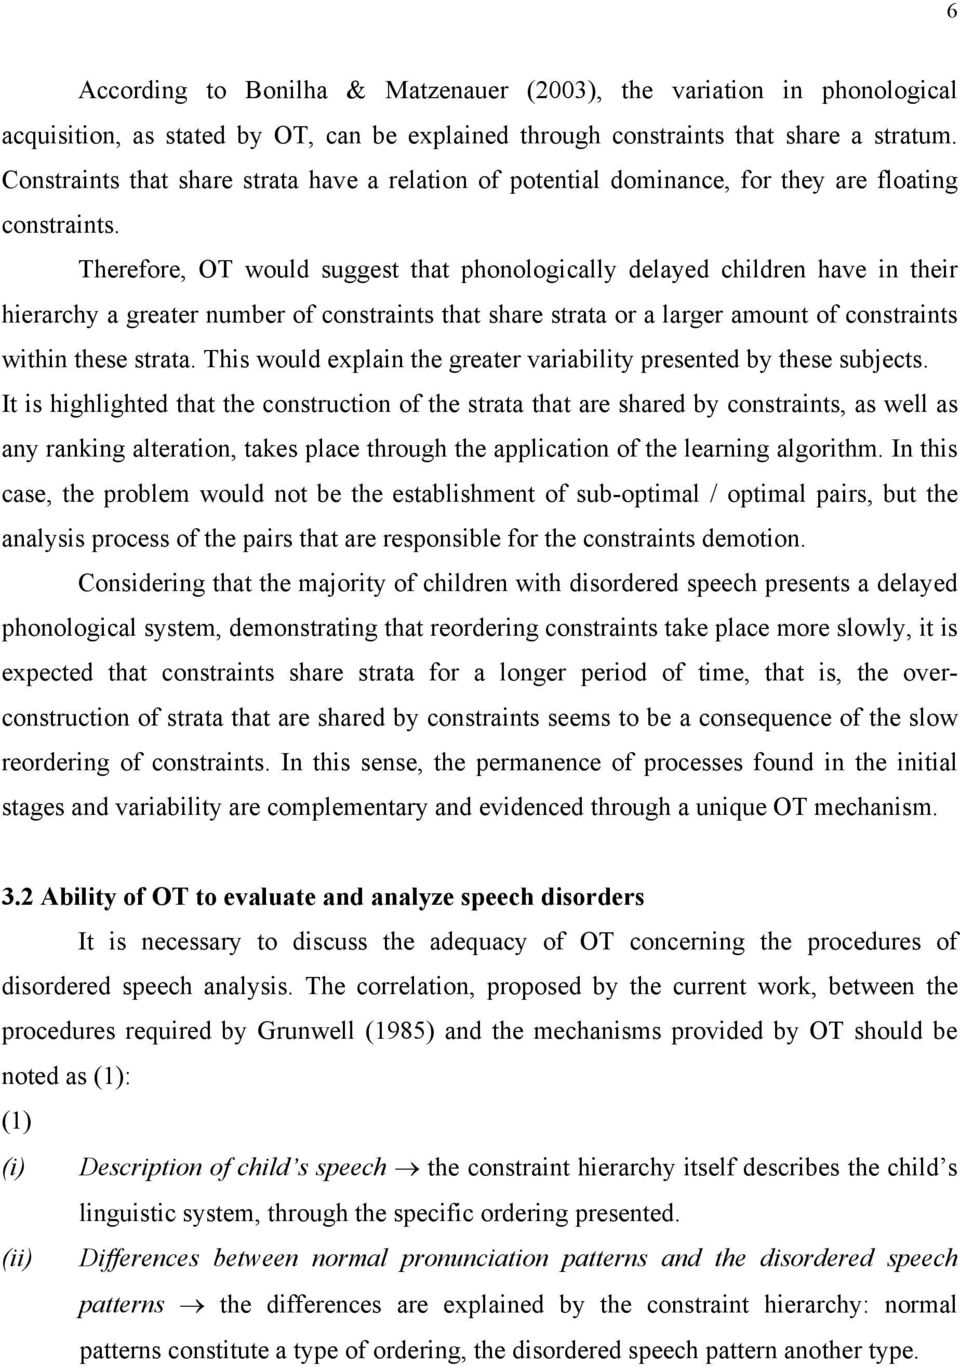 Therefore, OT would suggest that phonologically delayed children have in their hierarchy a greater number of constraints that share strata or a larger amount of constraints within these strata.